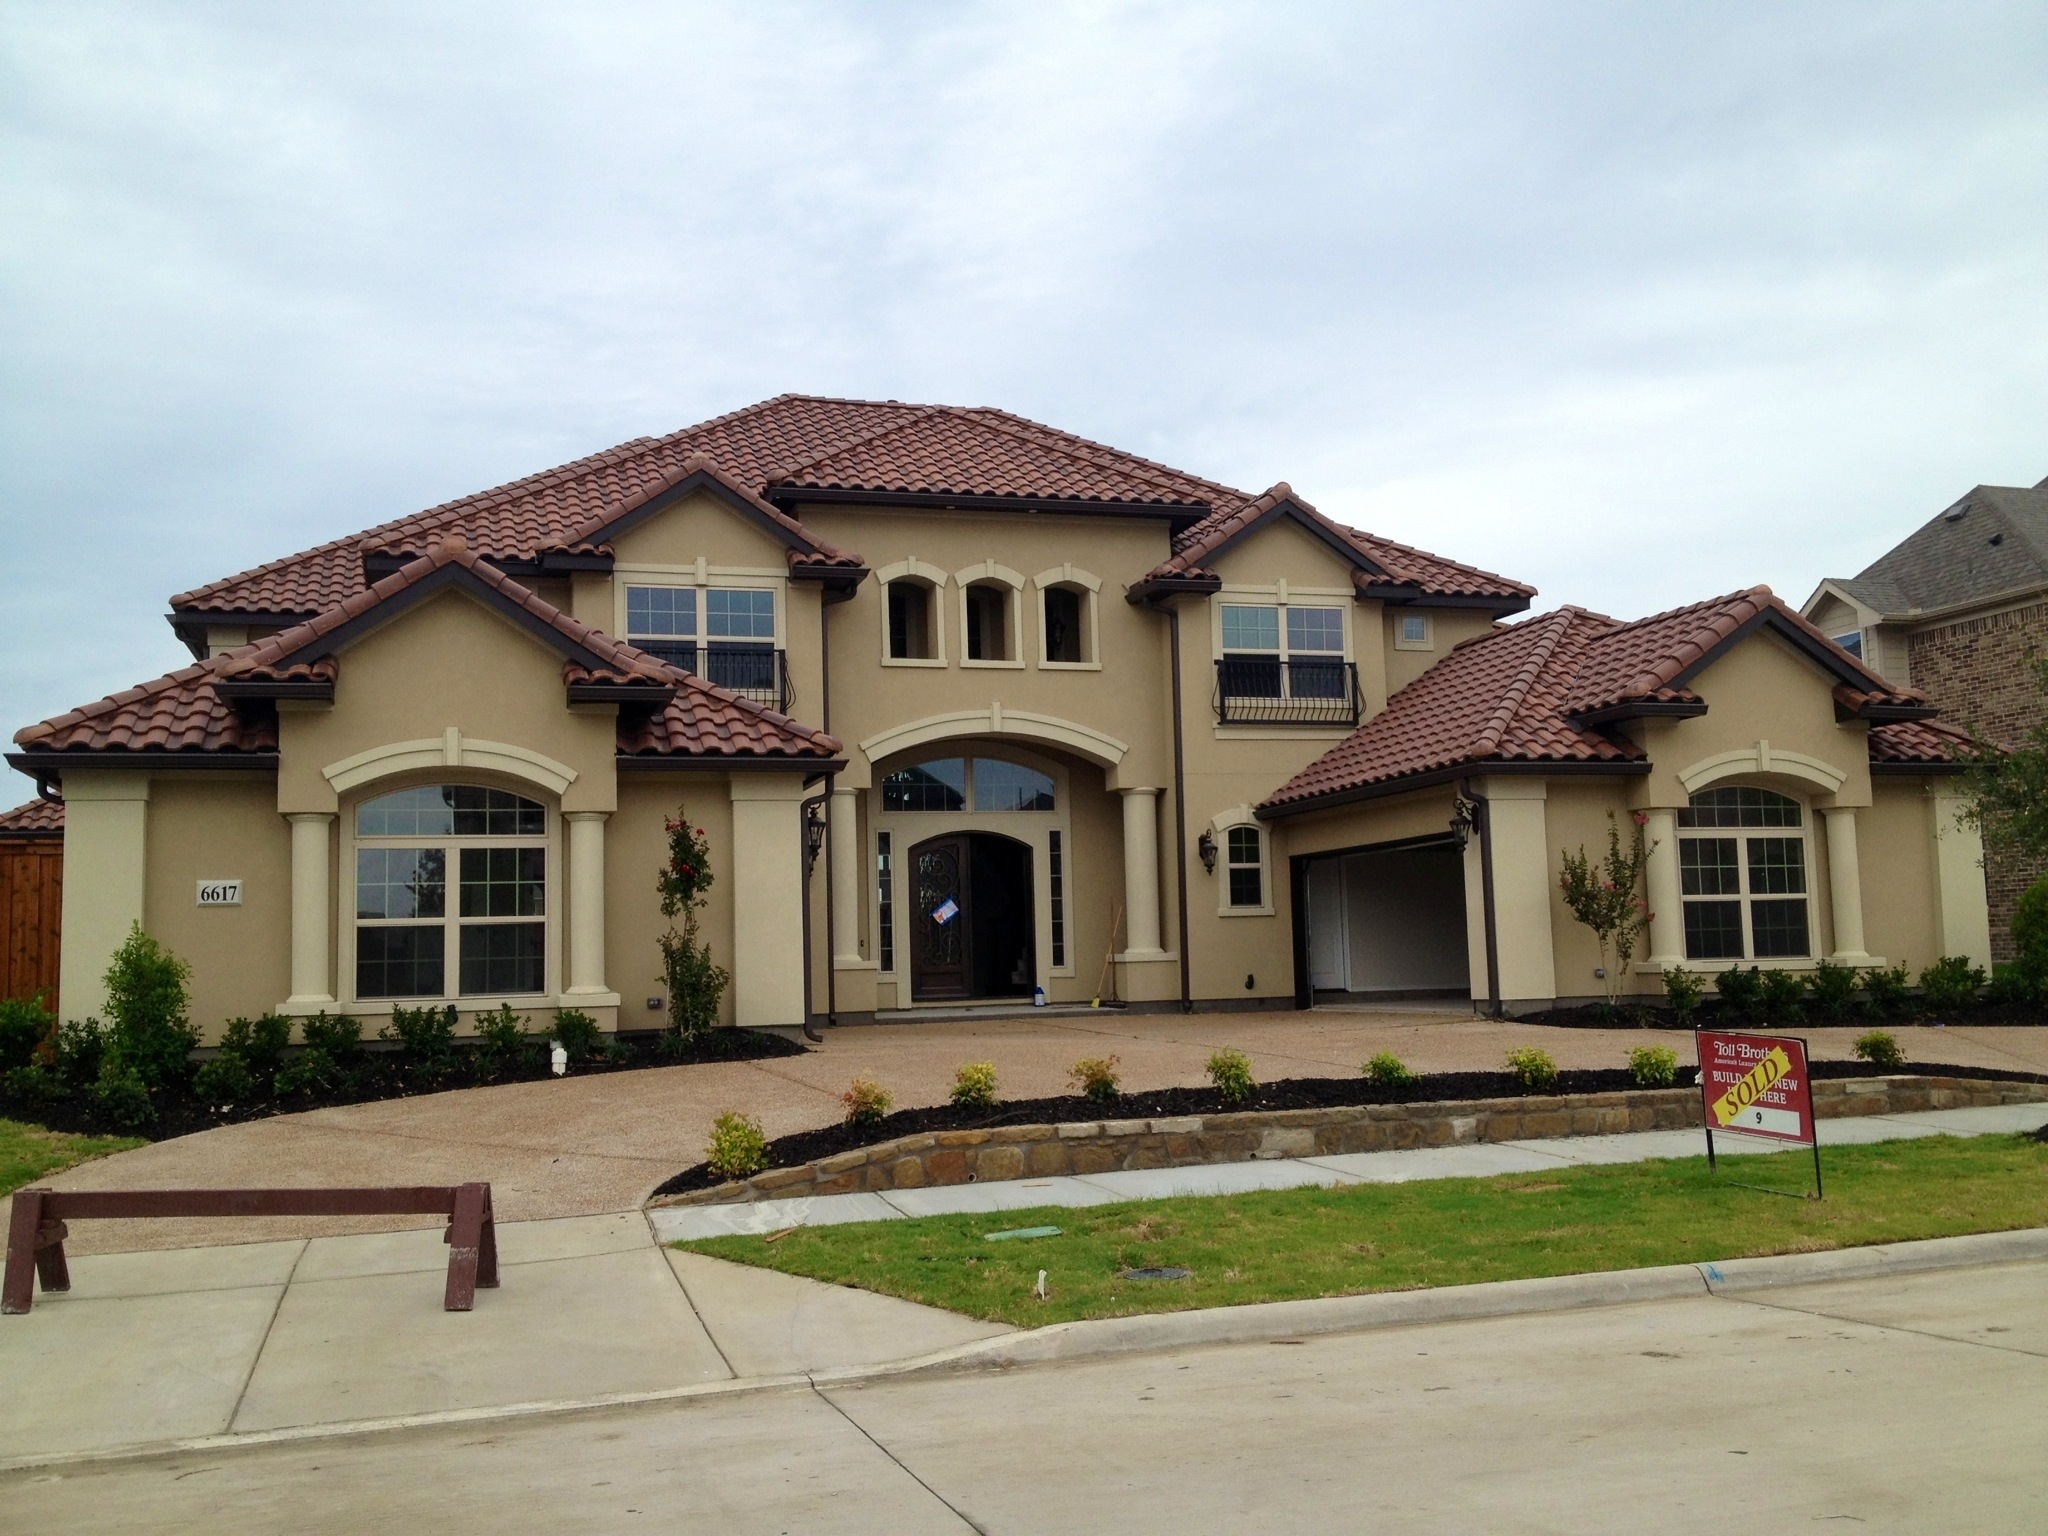 Toll brothers phillips creek ranch update frisco for Home designs newcastle